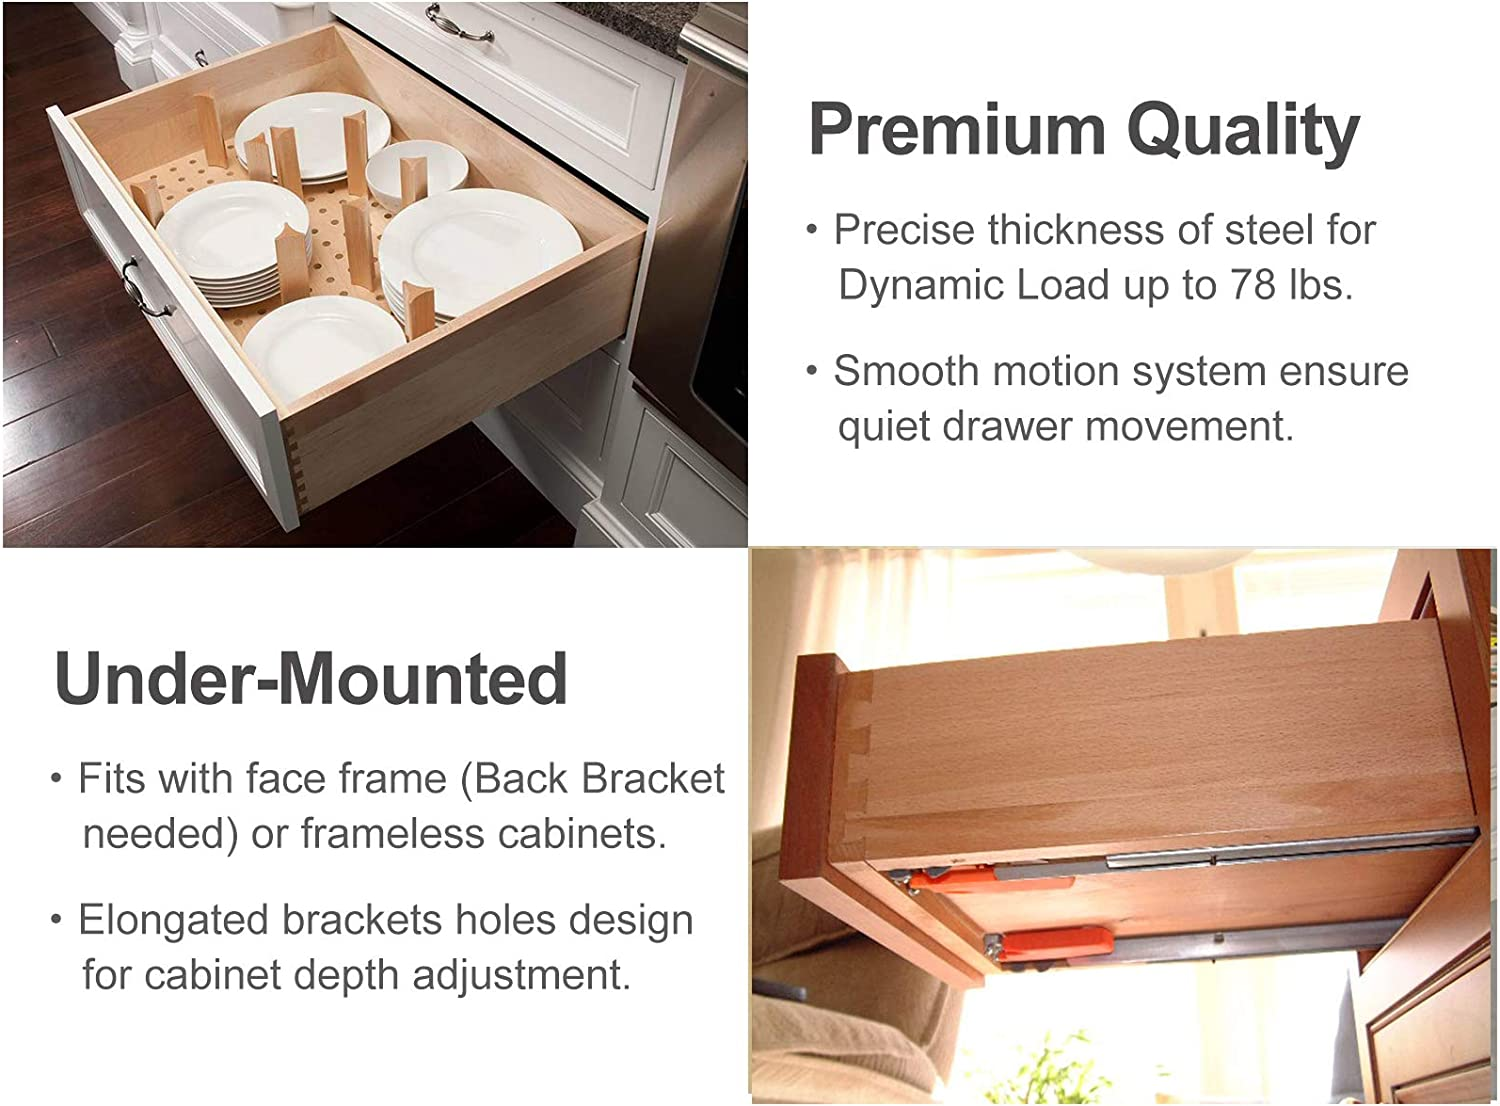 Back Bracket and Screws Locking Device Bottom Mount Slow Self Closing Cabinet Metal Drawer Rails with Runner VALISY 2 Pair of 21 Inch Ball Bearing Full Extension Soft Close Undermount Drawer Slides